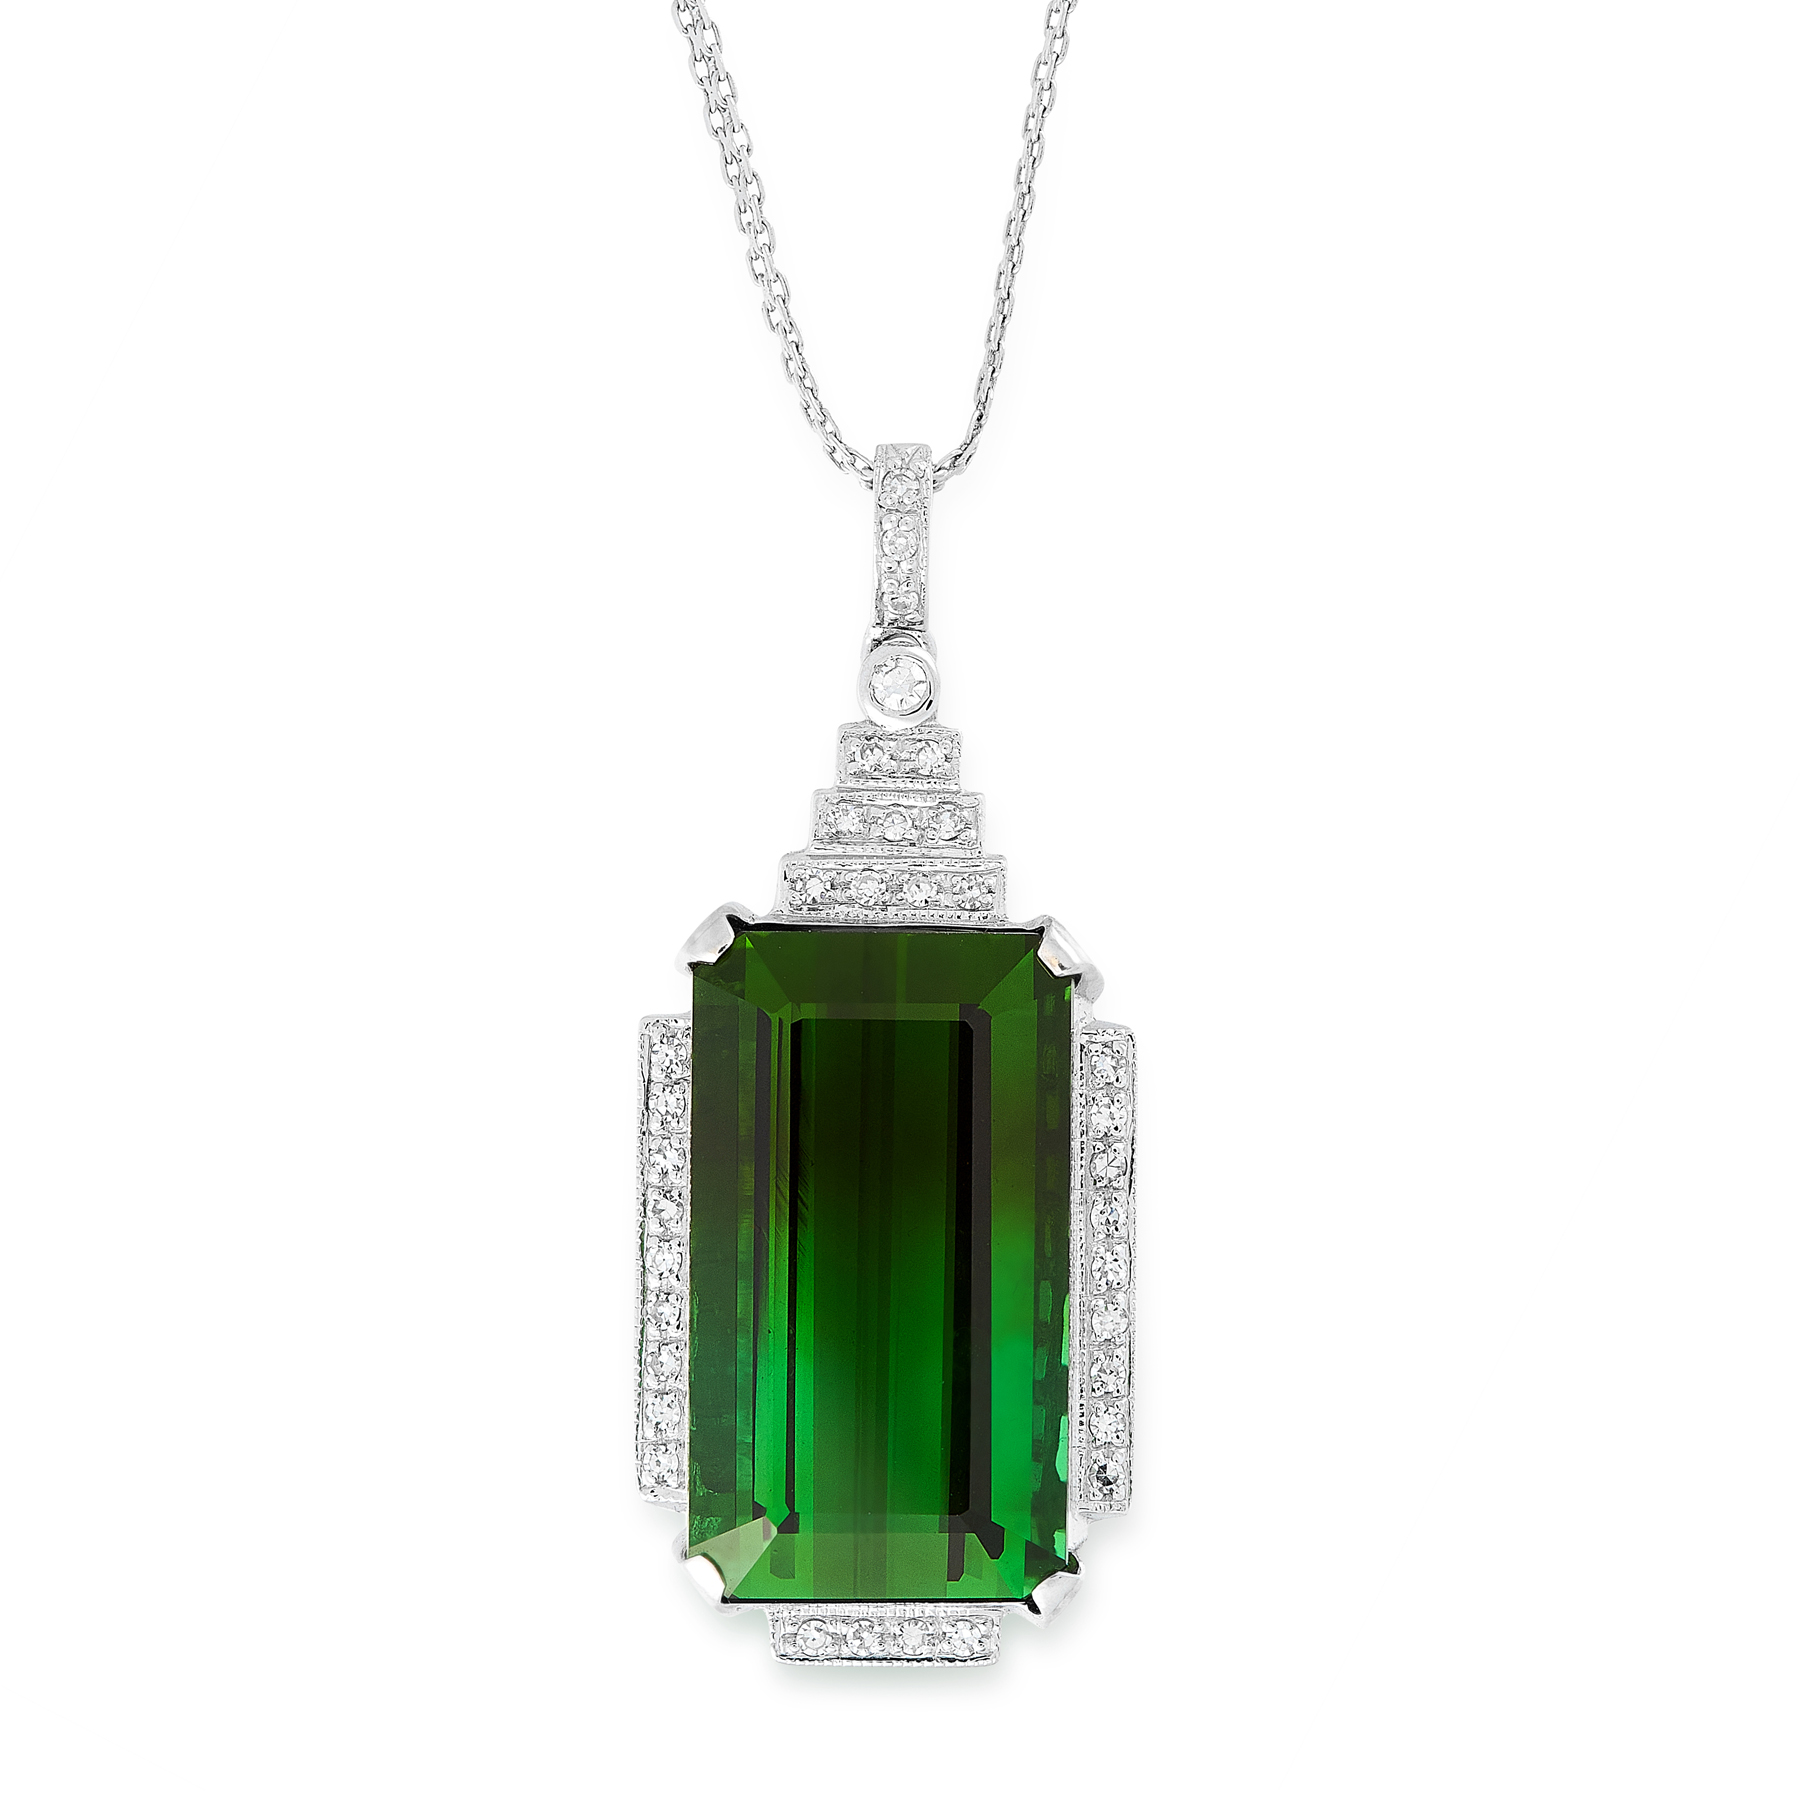 A GREEN TOURMALINE PENDANT AND CHAIN in 18ct white gold, in Art Deco style, set with an emerald